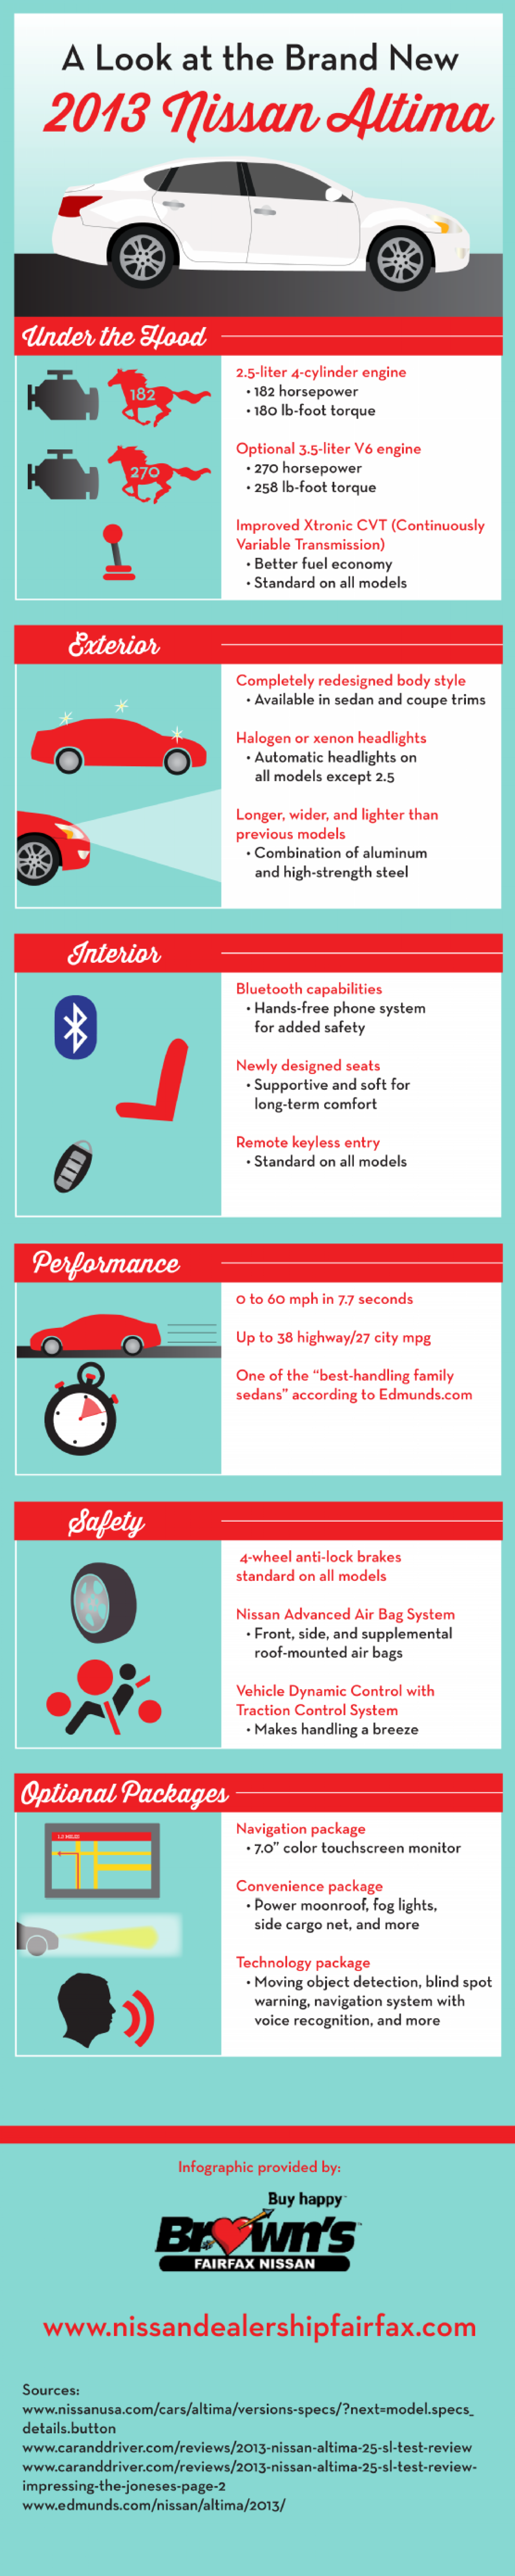 A Look at the Brand New 2013 Nissan Altima Infographic